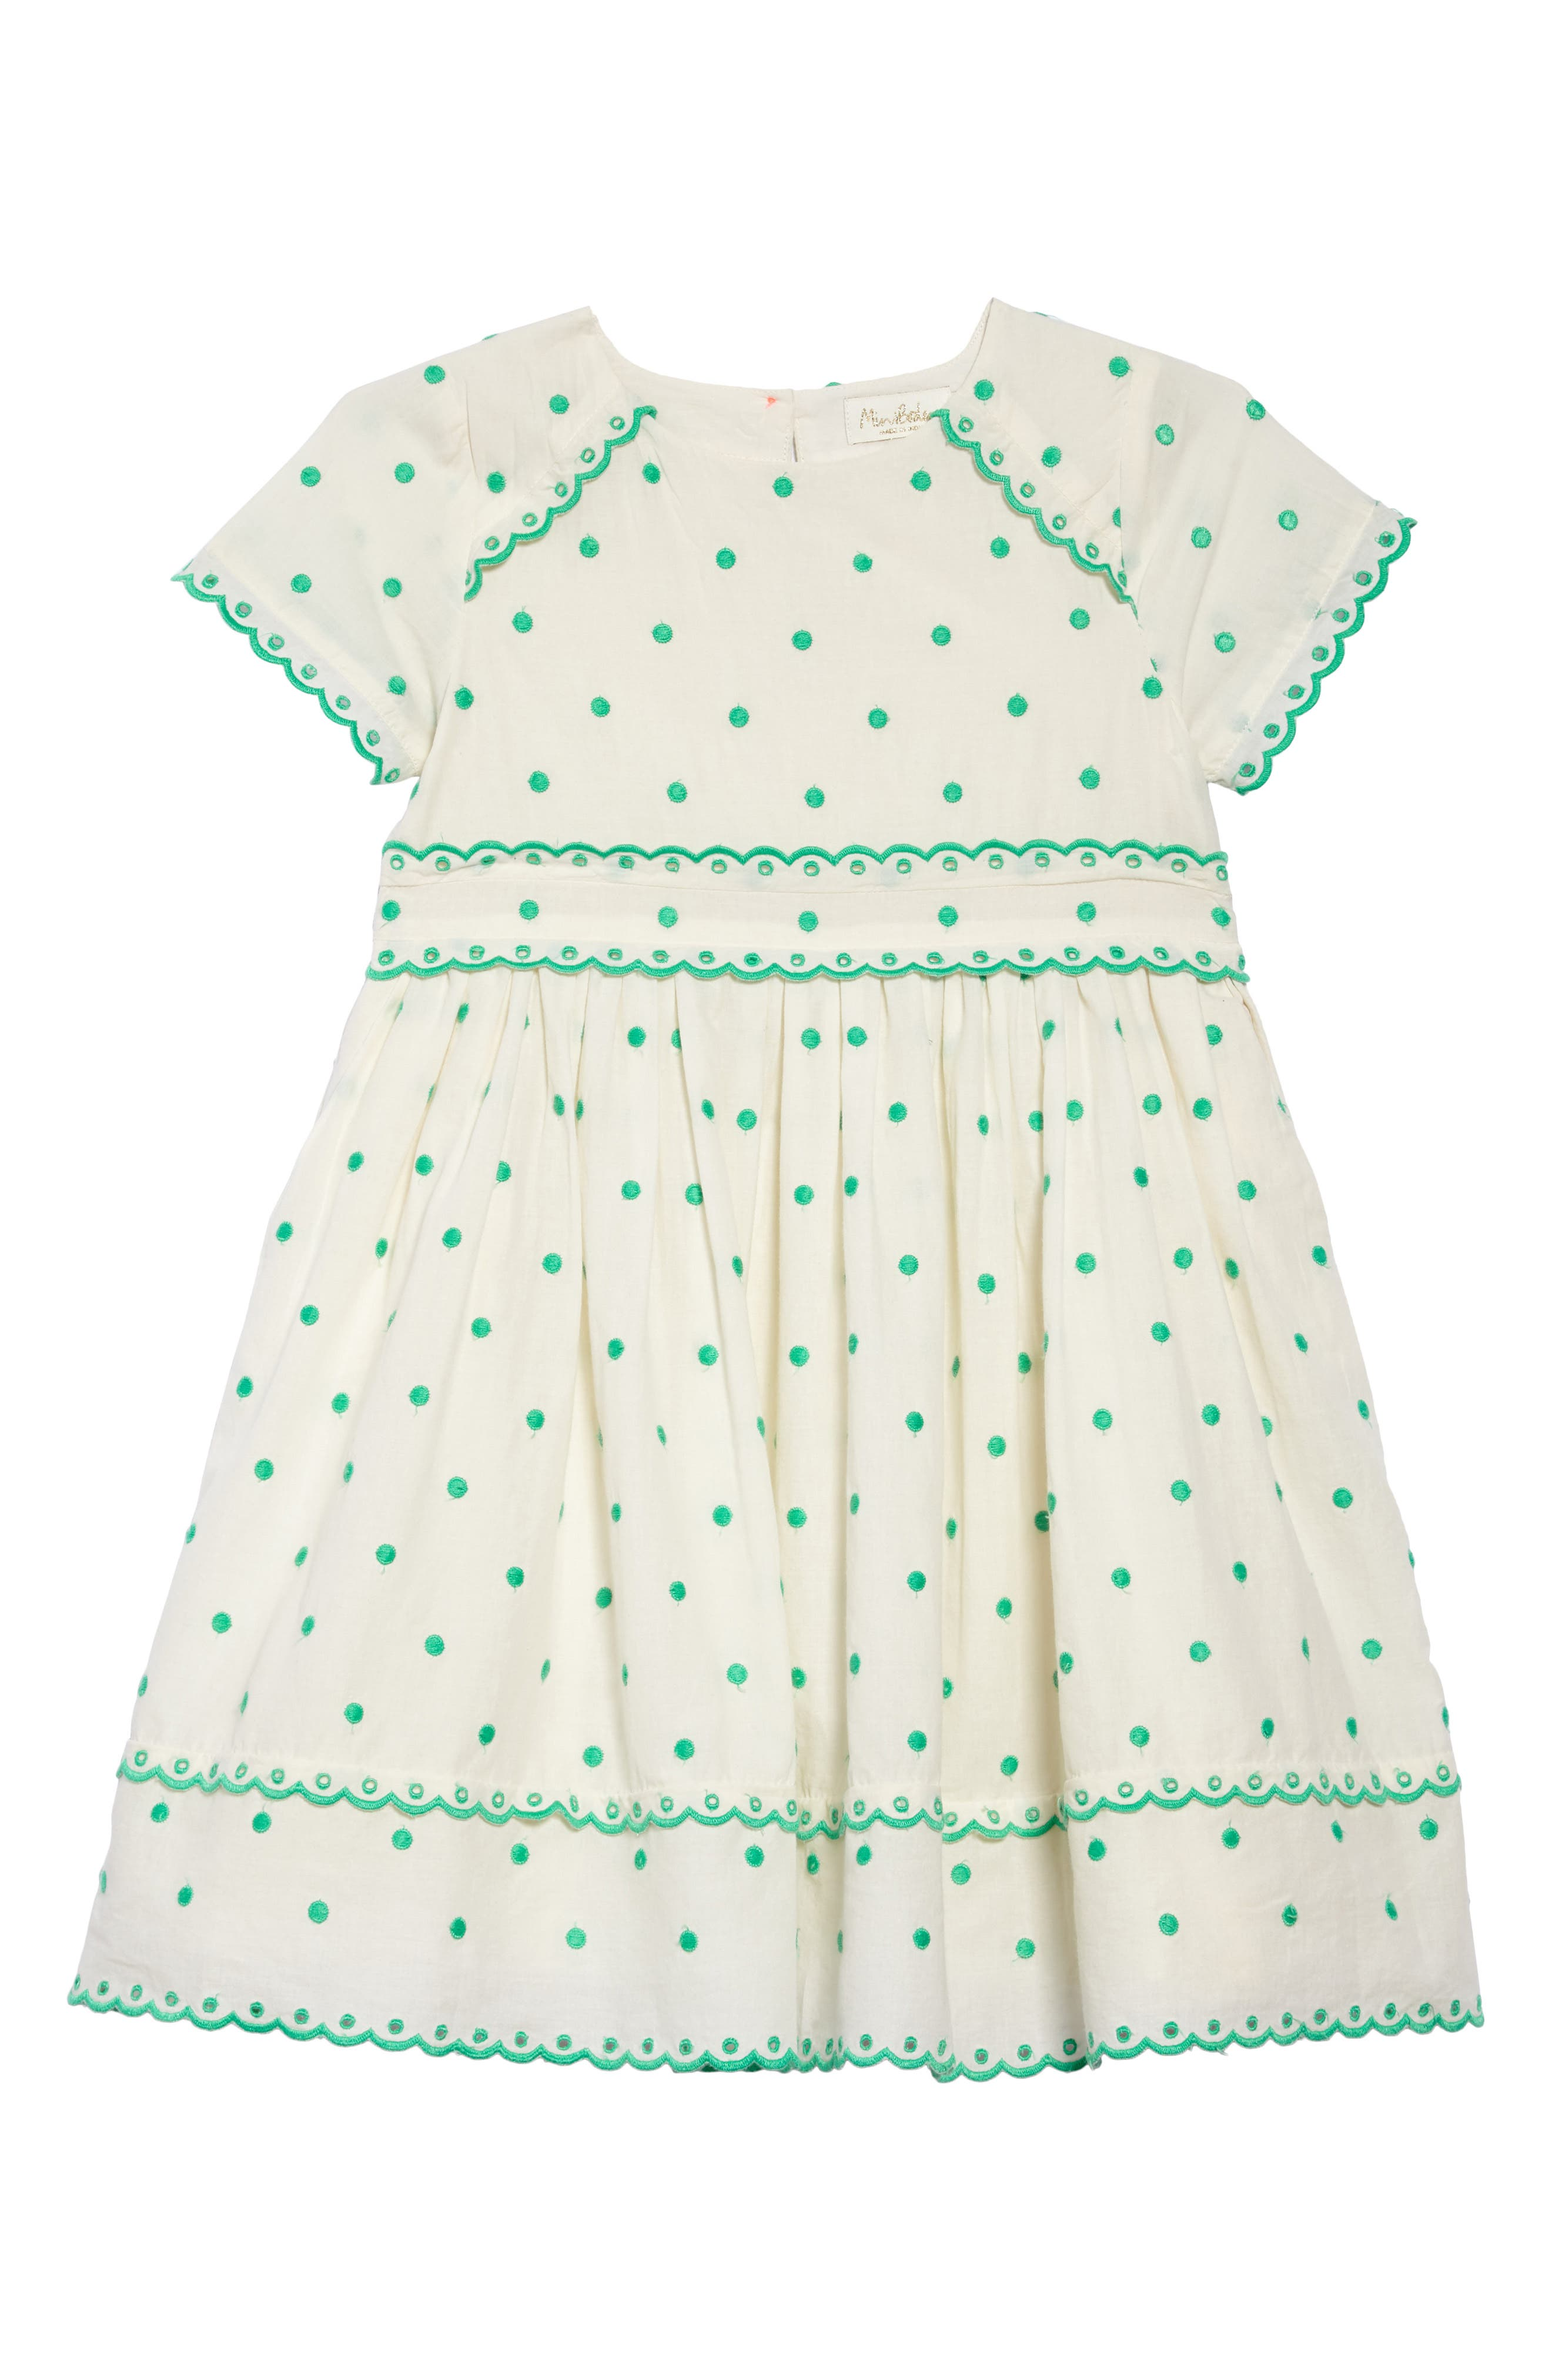 Embroidered Dot Scalloped Dress,                         Main,                         color, Sptecru/ Mint Embroidered Spot